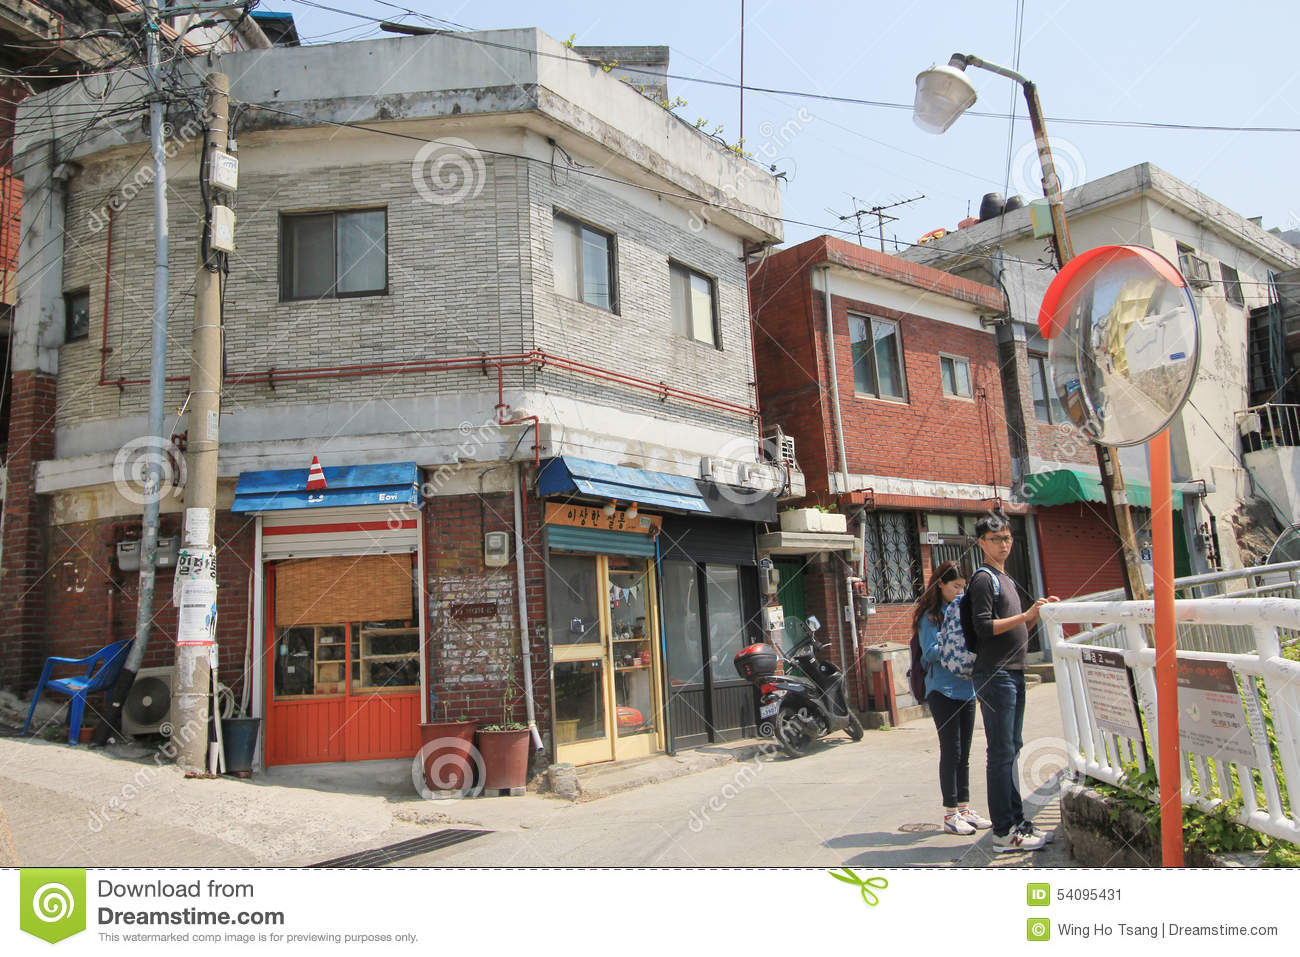 Ihwa mural village in seoul editorial photo image 54095431 for Mural village seoul